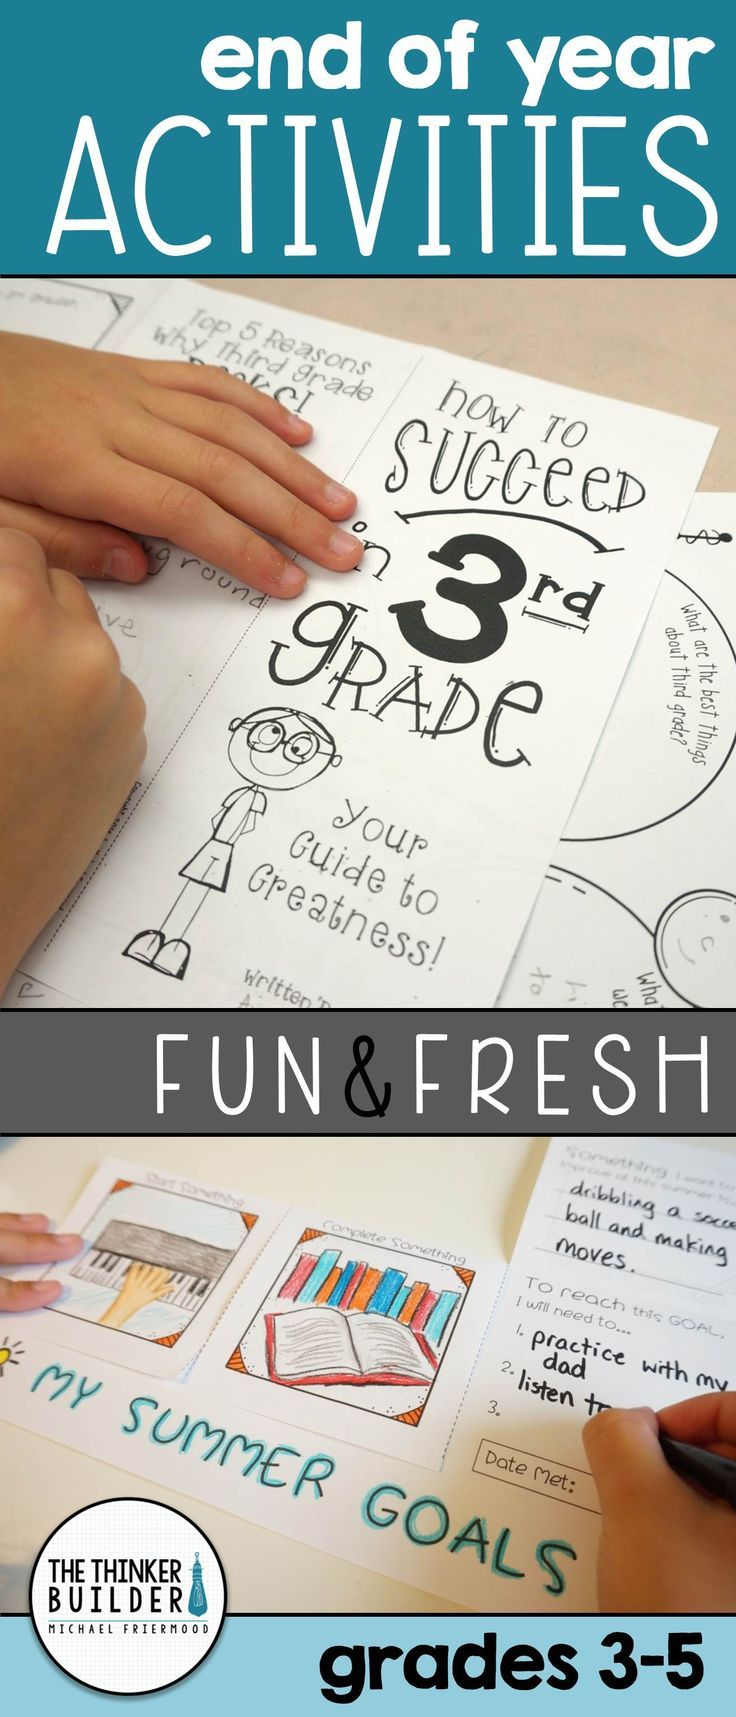 END OF THE YEAR Activities: Fun & Fresh